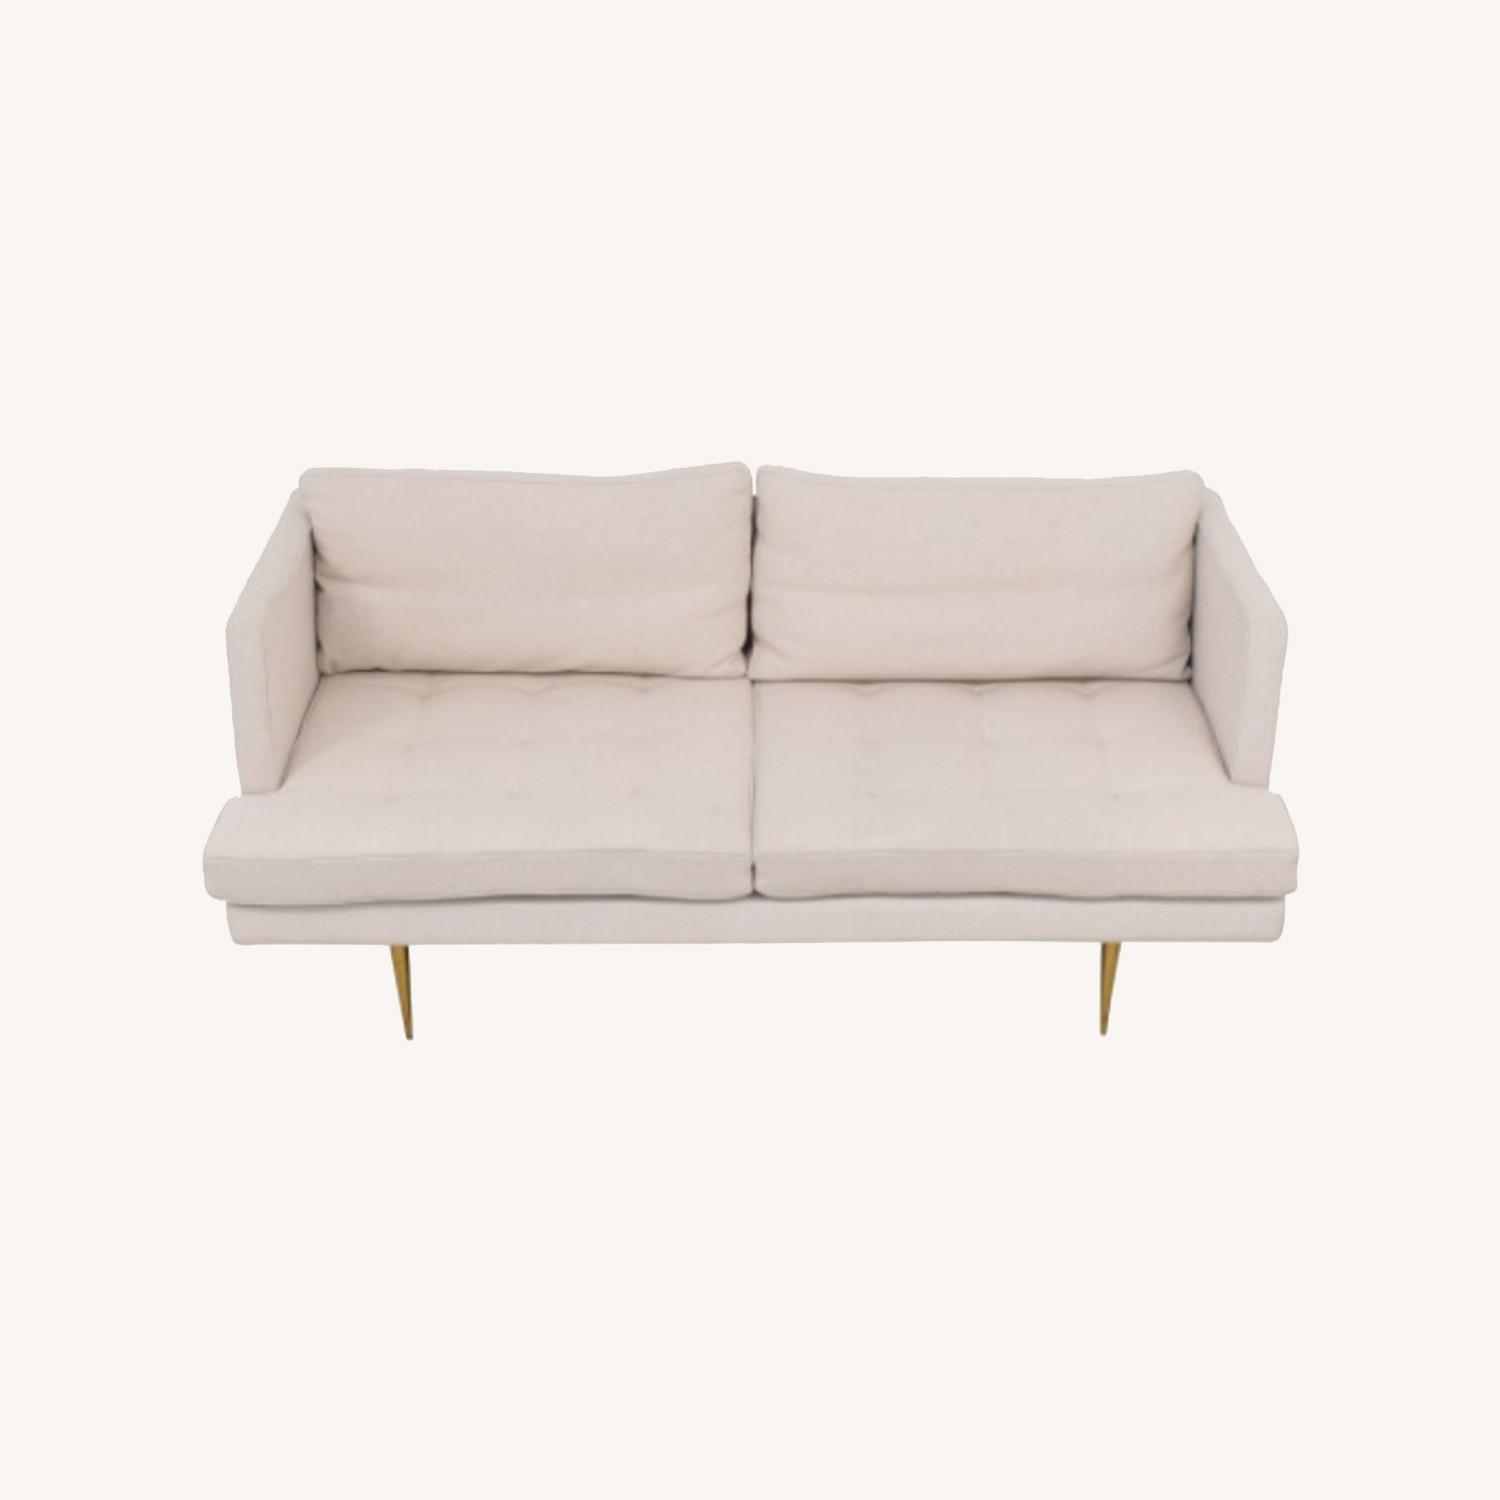 Organic Modernism Siena Loveseat Couch - image-0